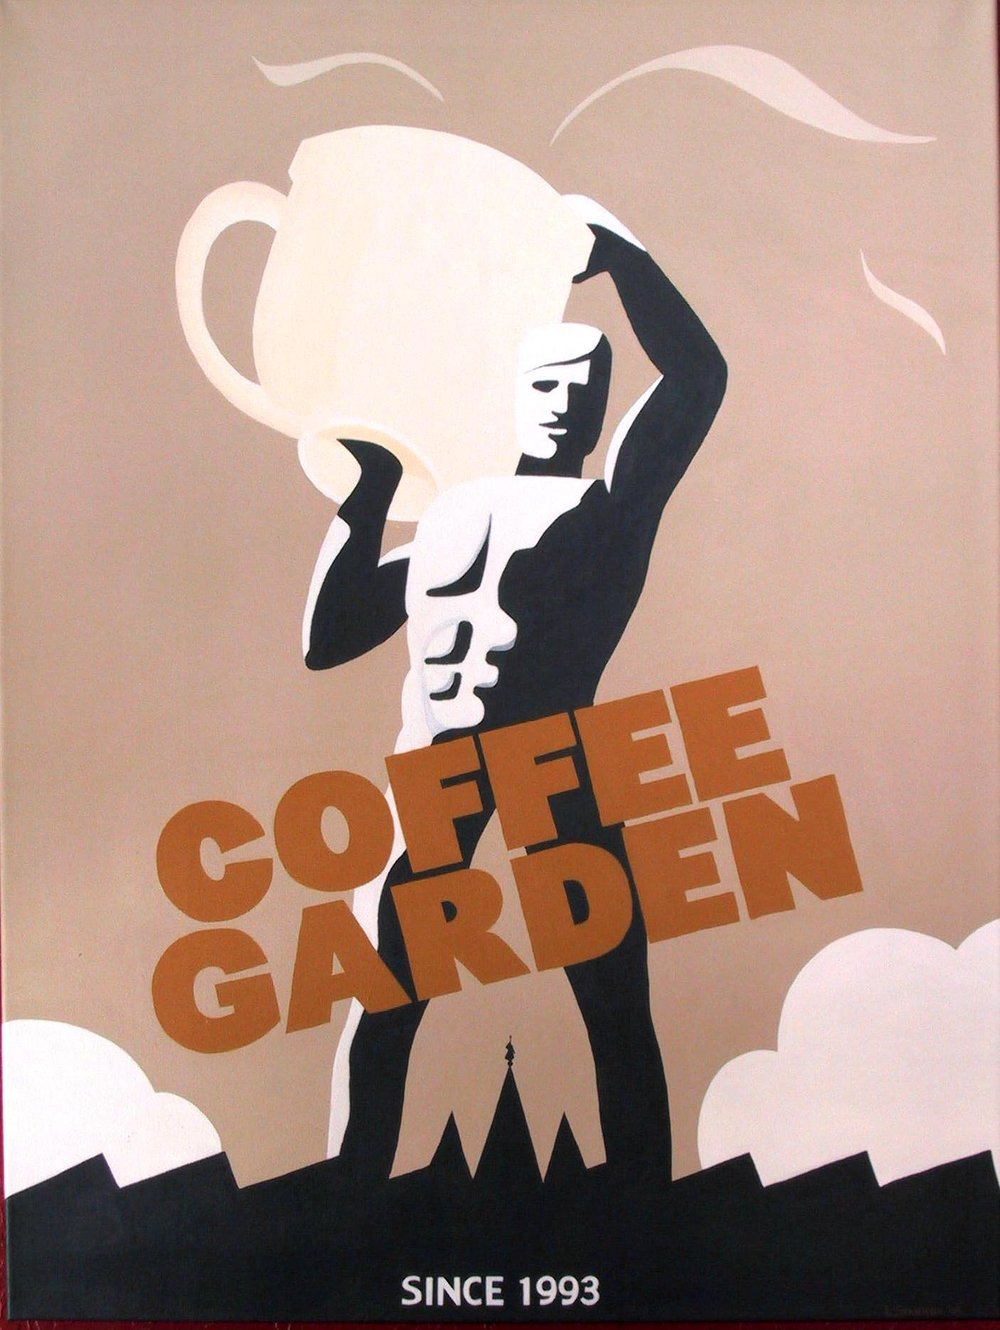 Coffee Garden - 254 S. Main St., SLC